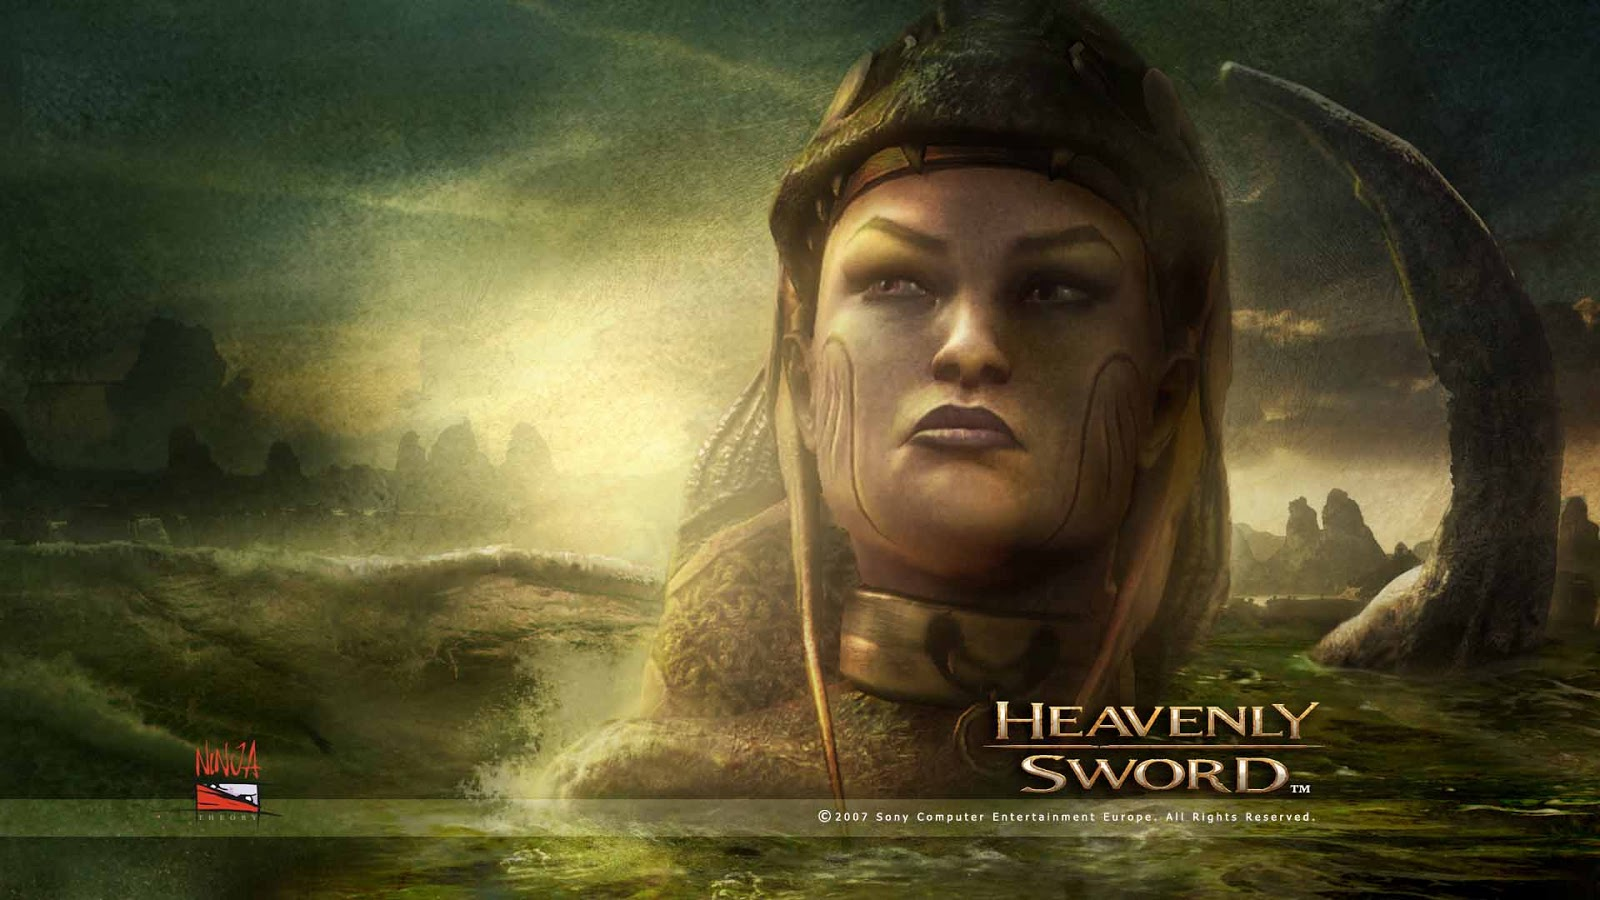 62 Heavenly Sword Wallpaper Hd On Wallpapersafari